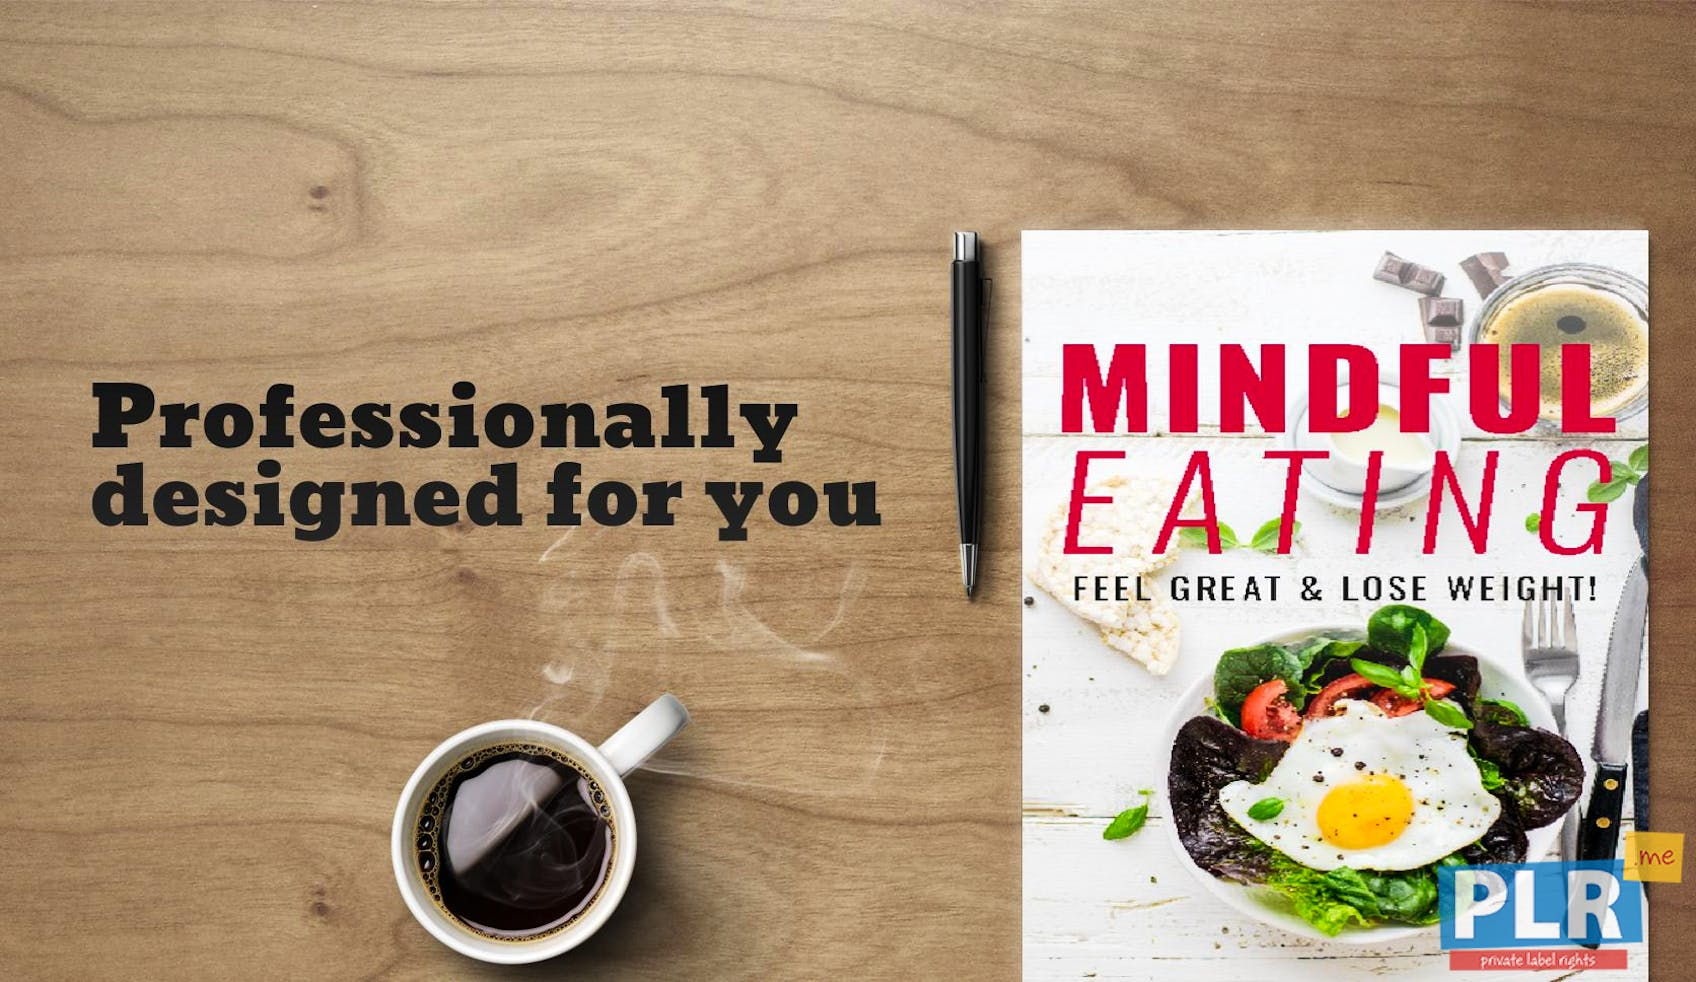 Mindful Eating Feel Great And Lose Weight